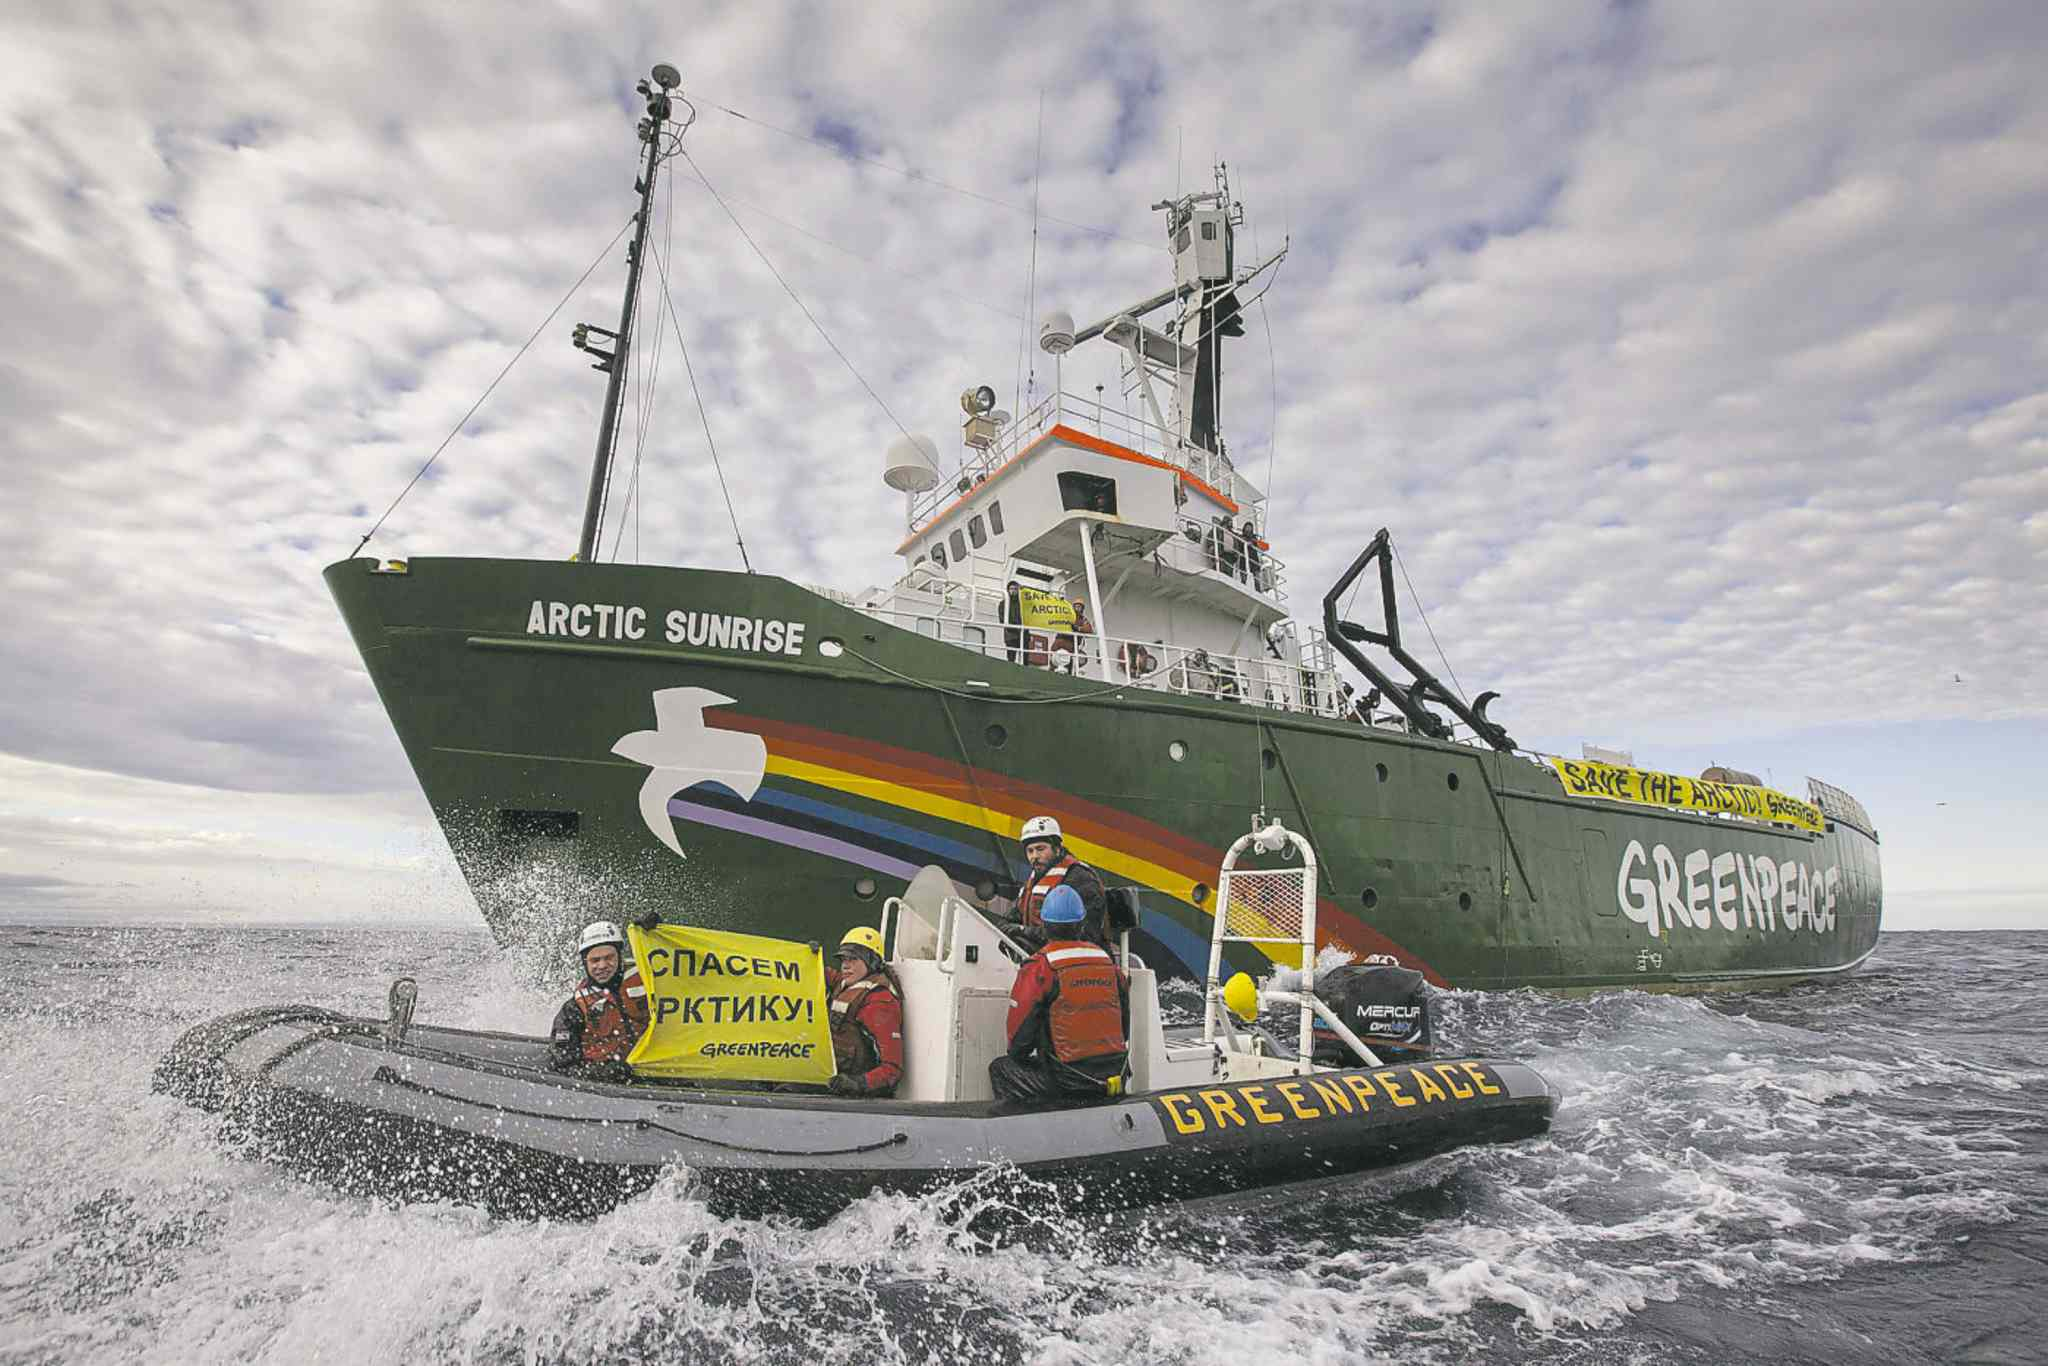 Environmental groups such as Greenpeace have protested drilling in the Arctic.